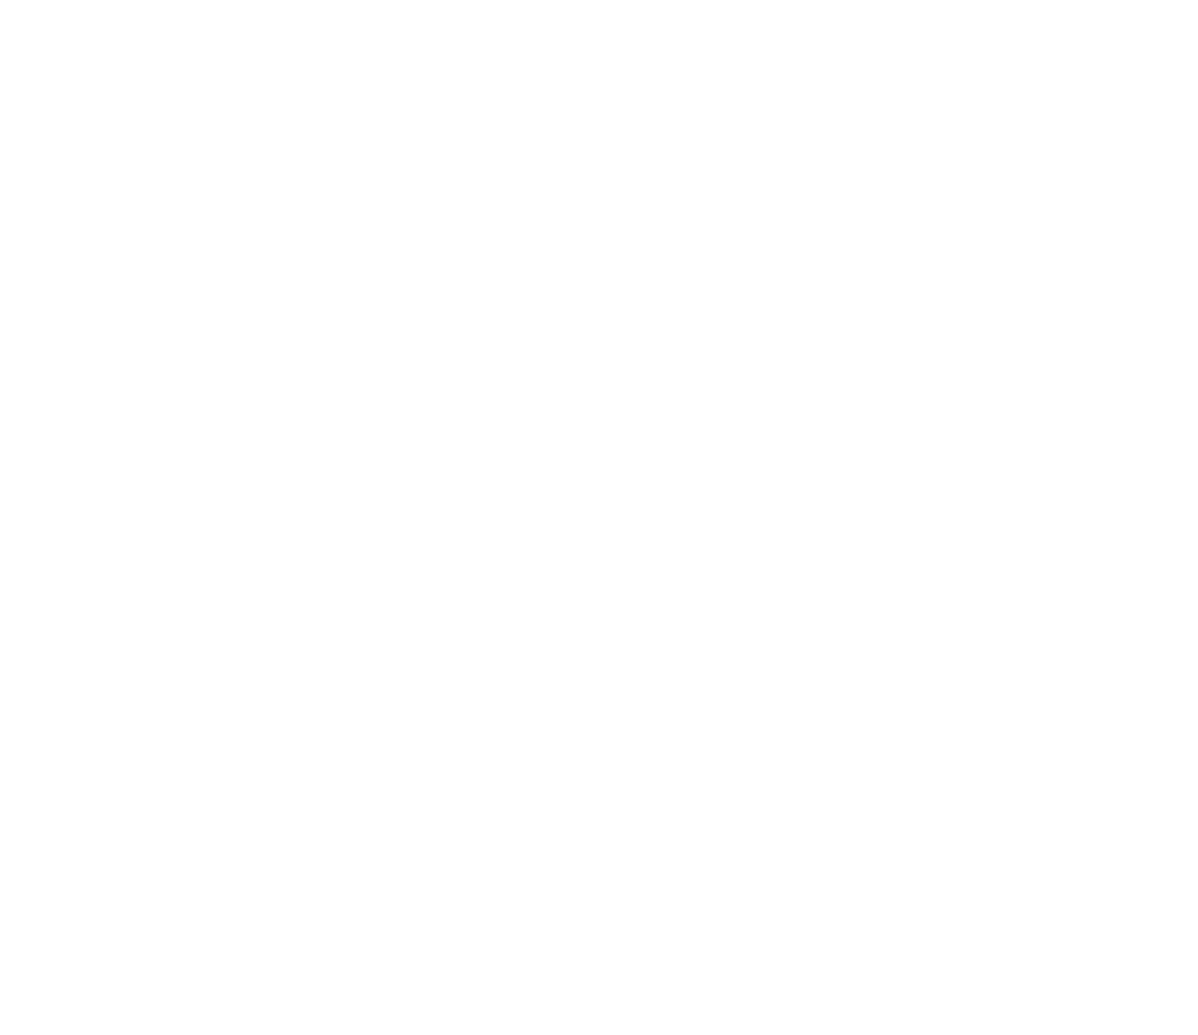 Waco Escape Rooms - logo